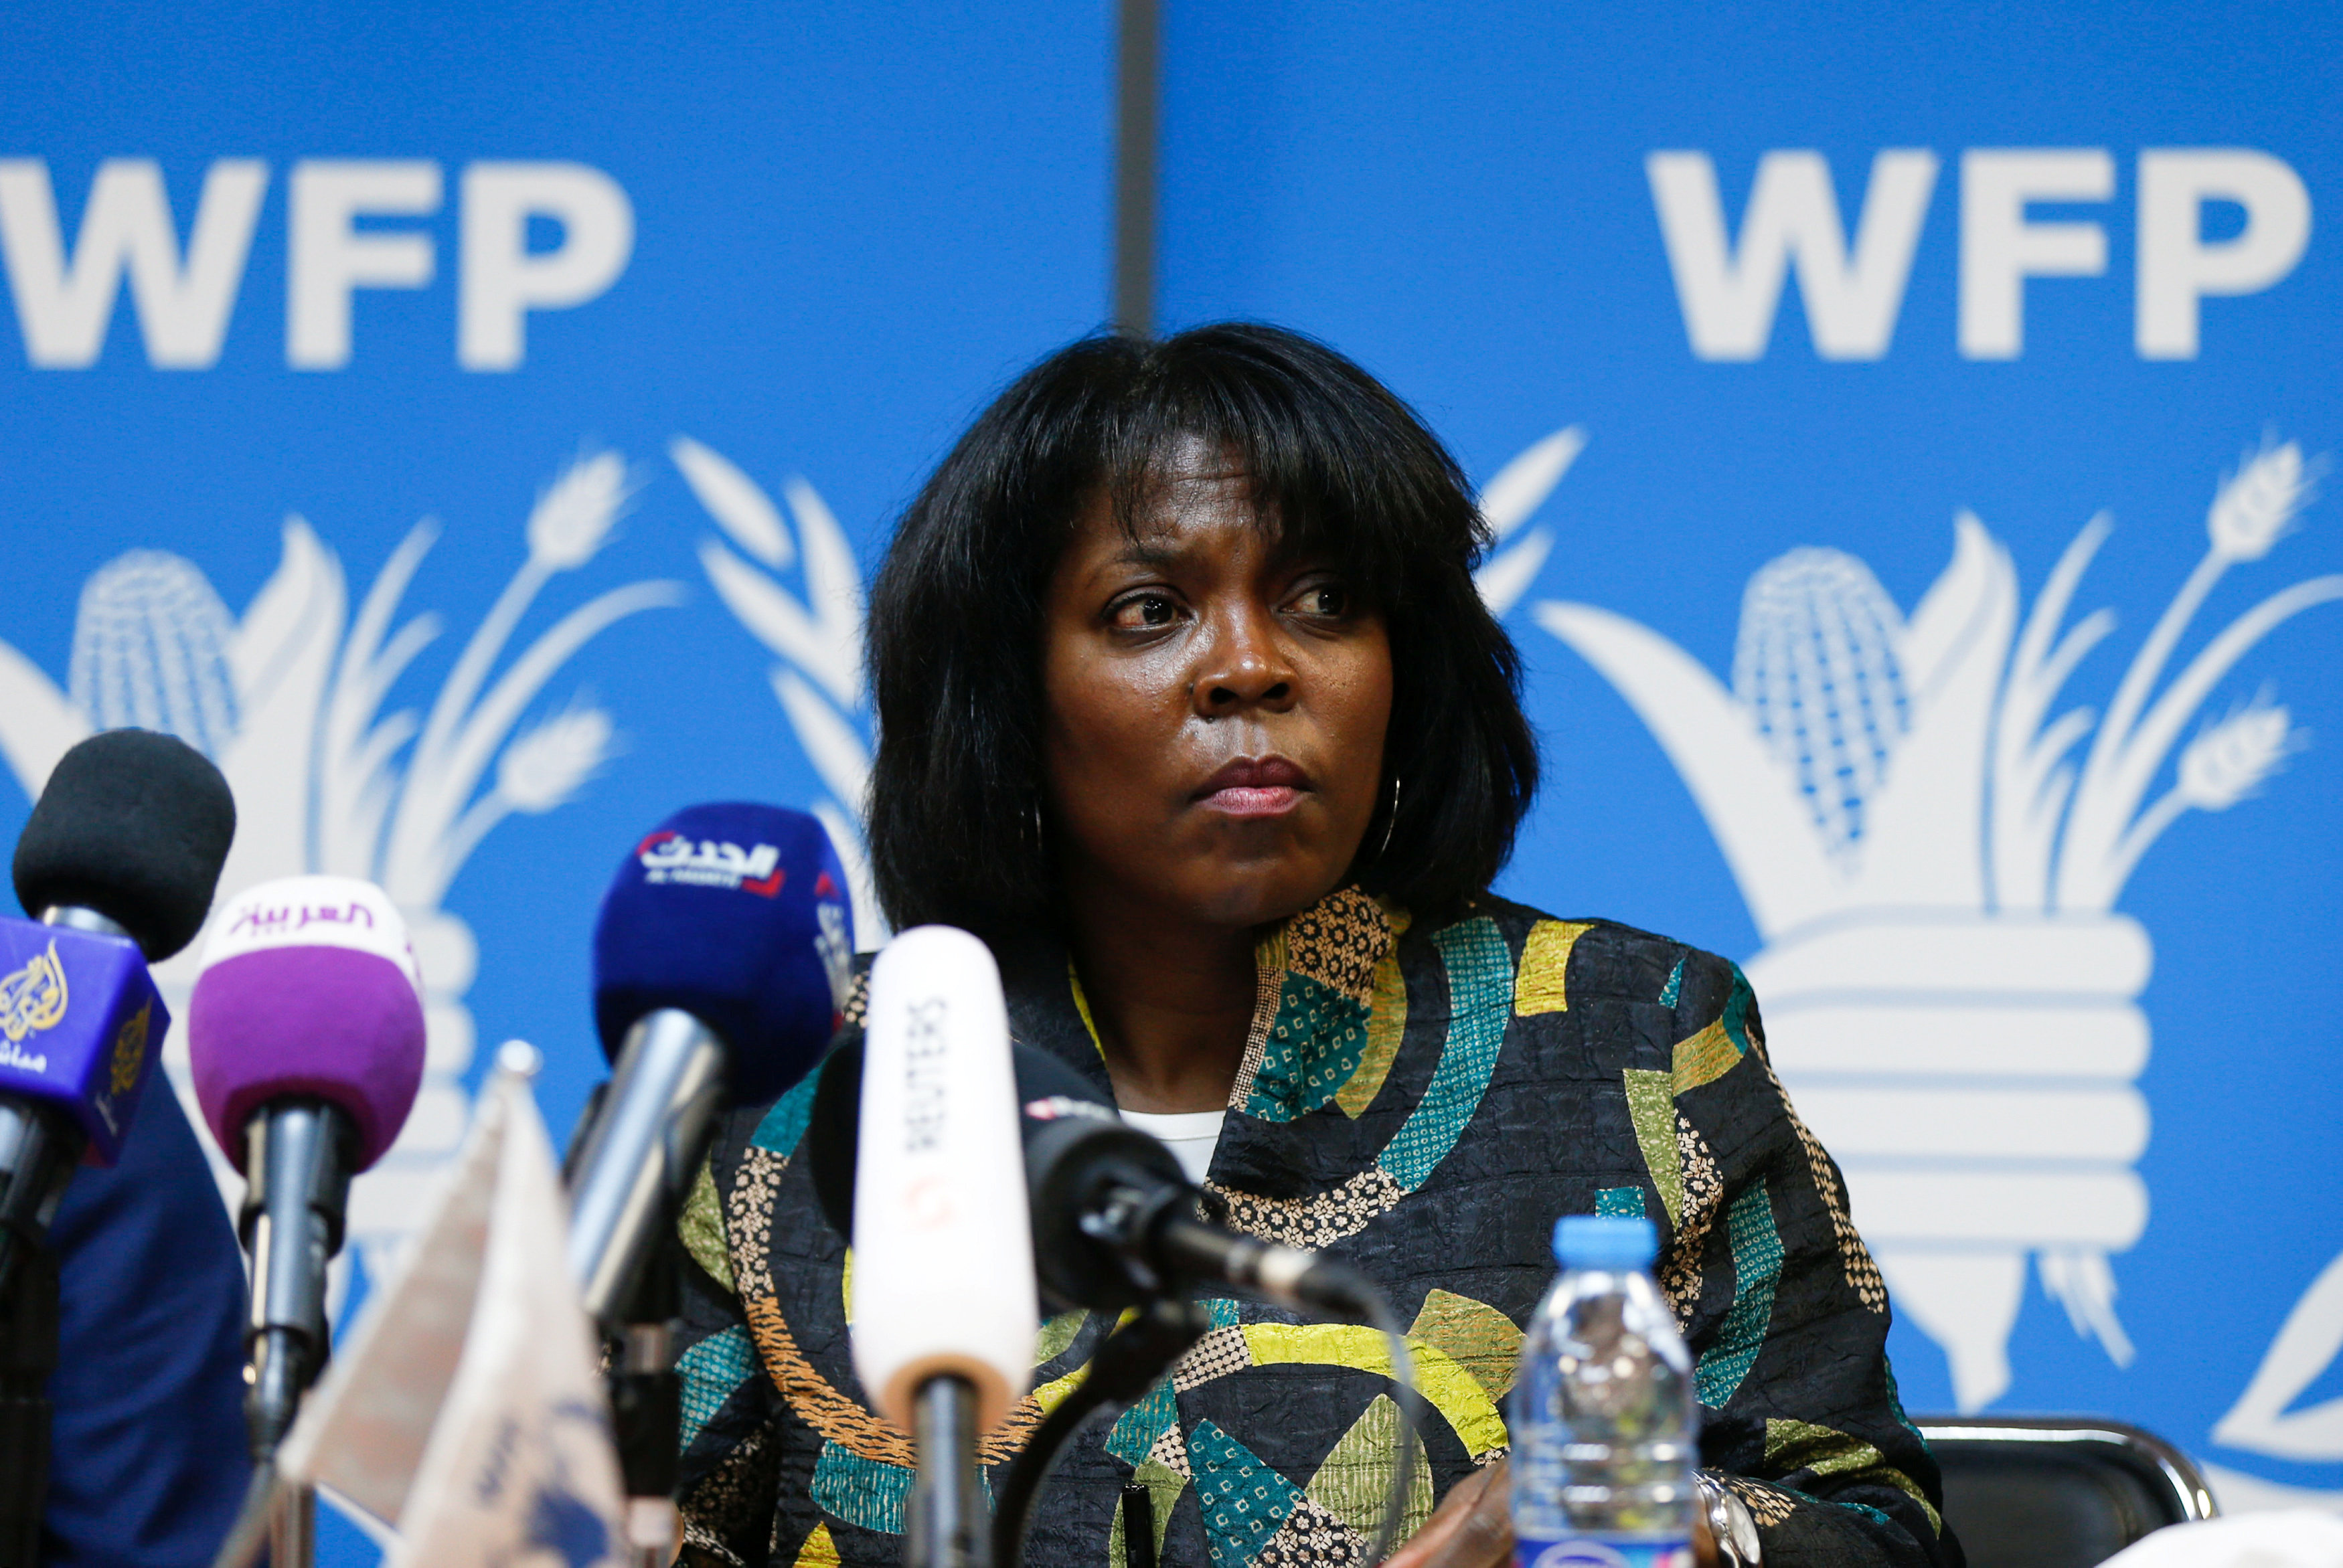 Ertharin Cousin, Executive Director of the United Nations World Food Programme, speaks during a news conference discussing the latest challenges the agency is facing in Yemen, in ?Amman, Jordan, March 13, 2017. REUTERS/Muhammad Hamed